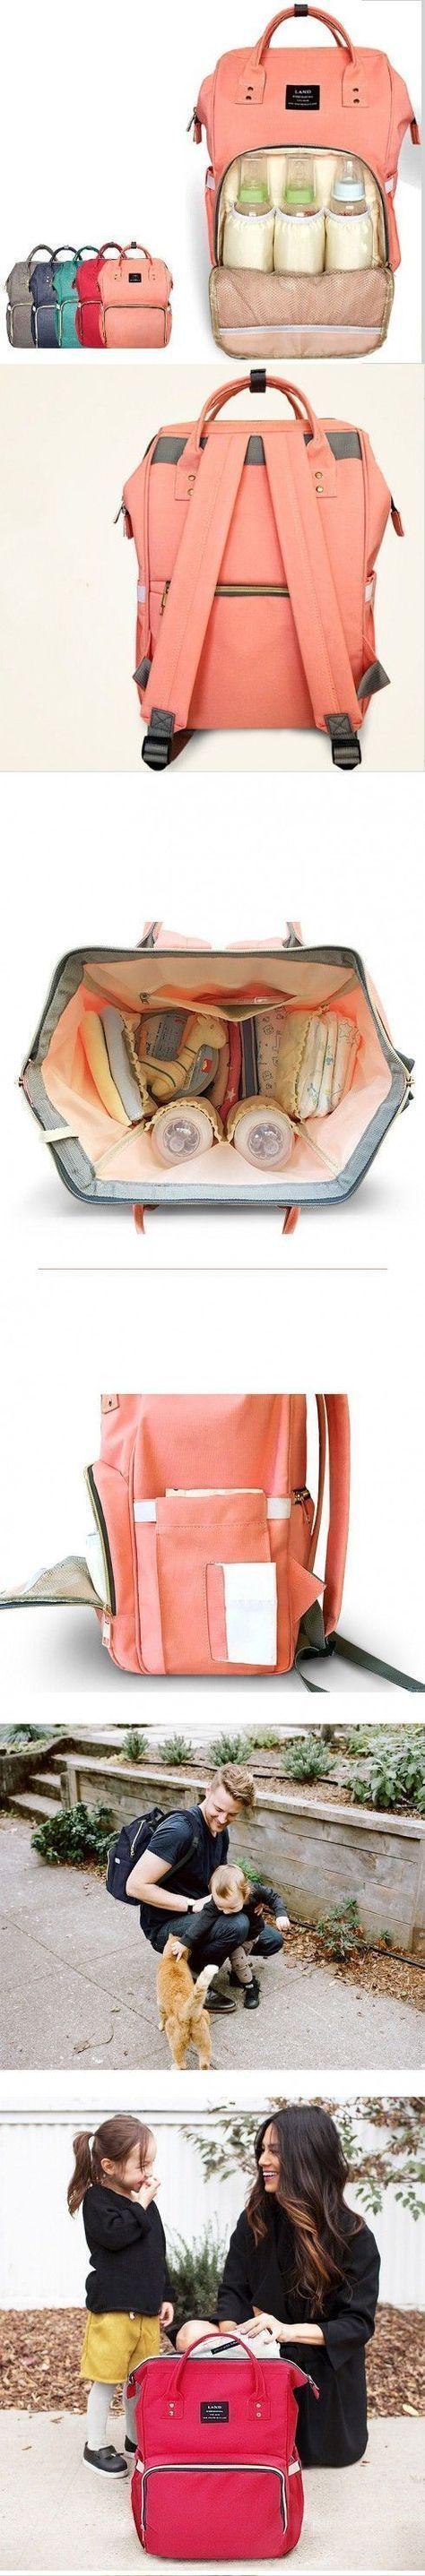 This fashionable backpack diaper bag is perfect for mom and baby. Comes in stylish colors from coral pink to classic black - https://mommababygear.com/products/fashionable-travel-backpack-for-baby-care #ParentingIsHard #BabyTips